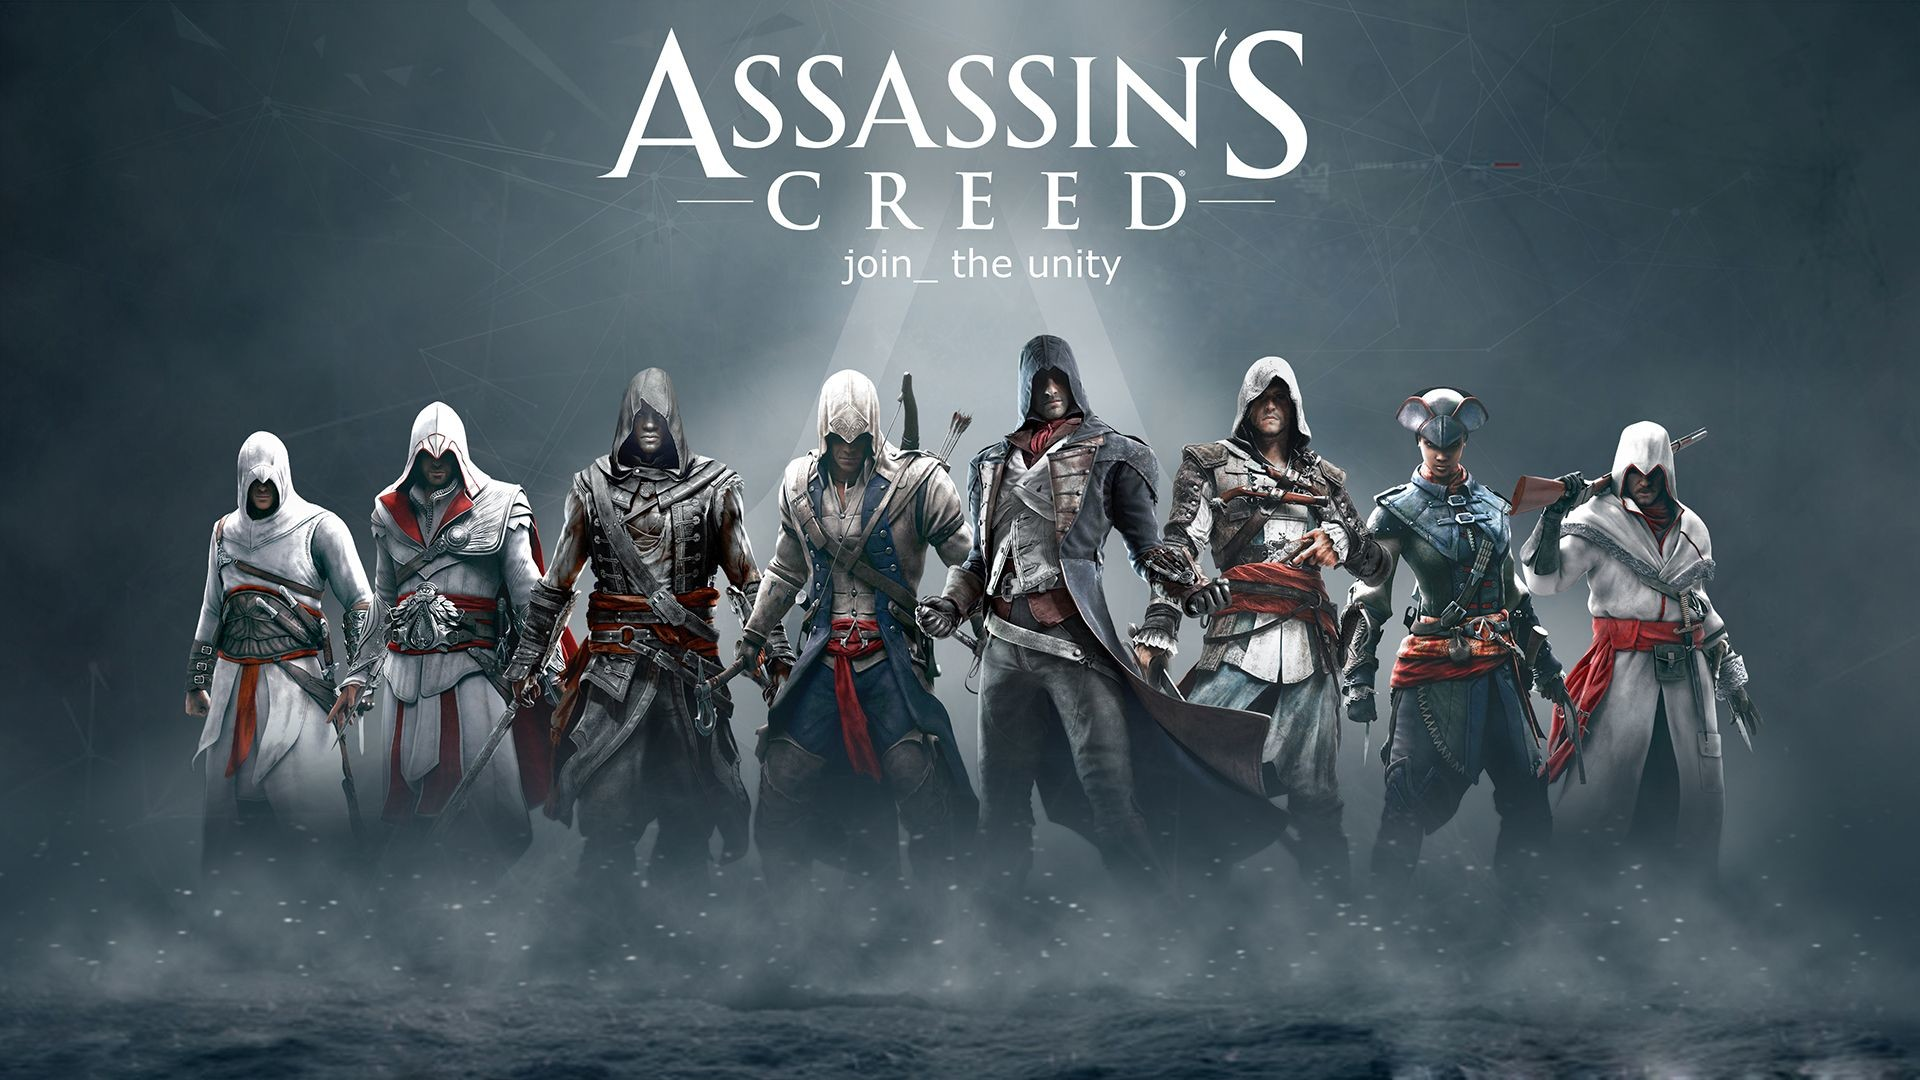 Res: 1920x1080, American Revolution Assassins Creed Assassins Creed Connor